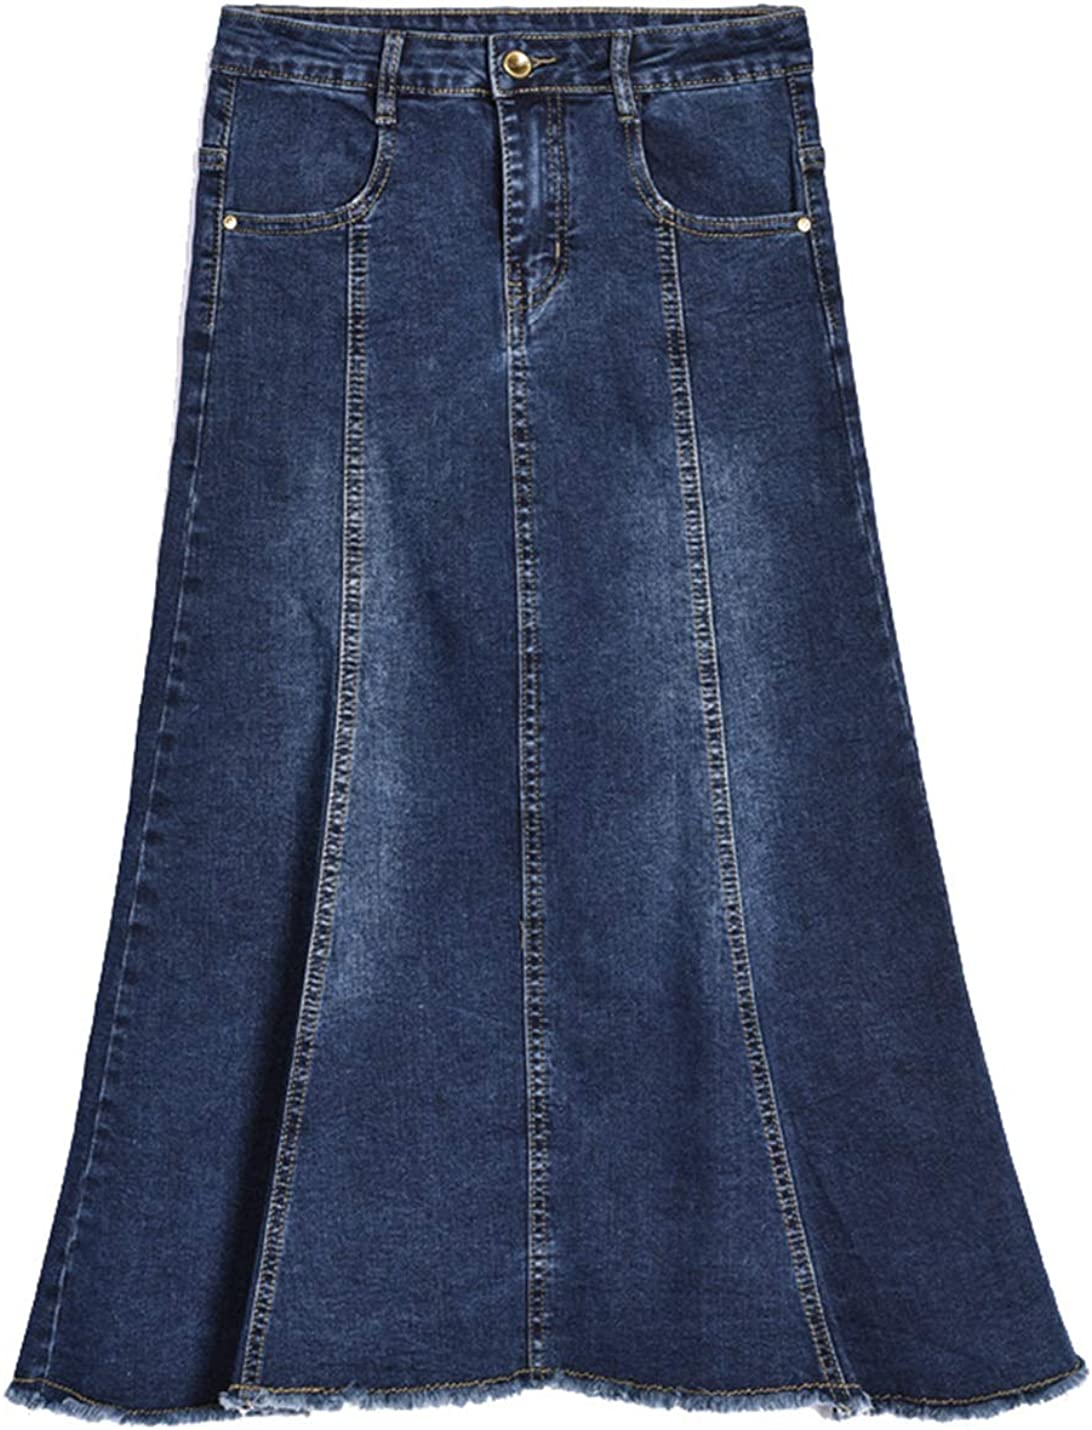 Gihuo Women's Vintage A-Line Midi Jean Denim Fishtail Skirt with Pockets